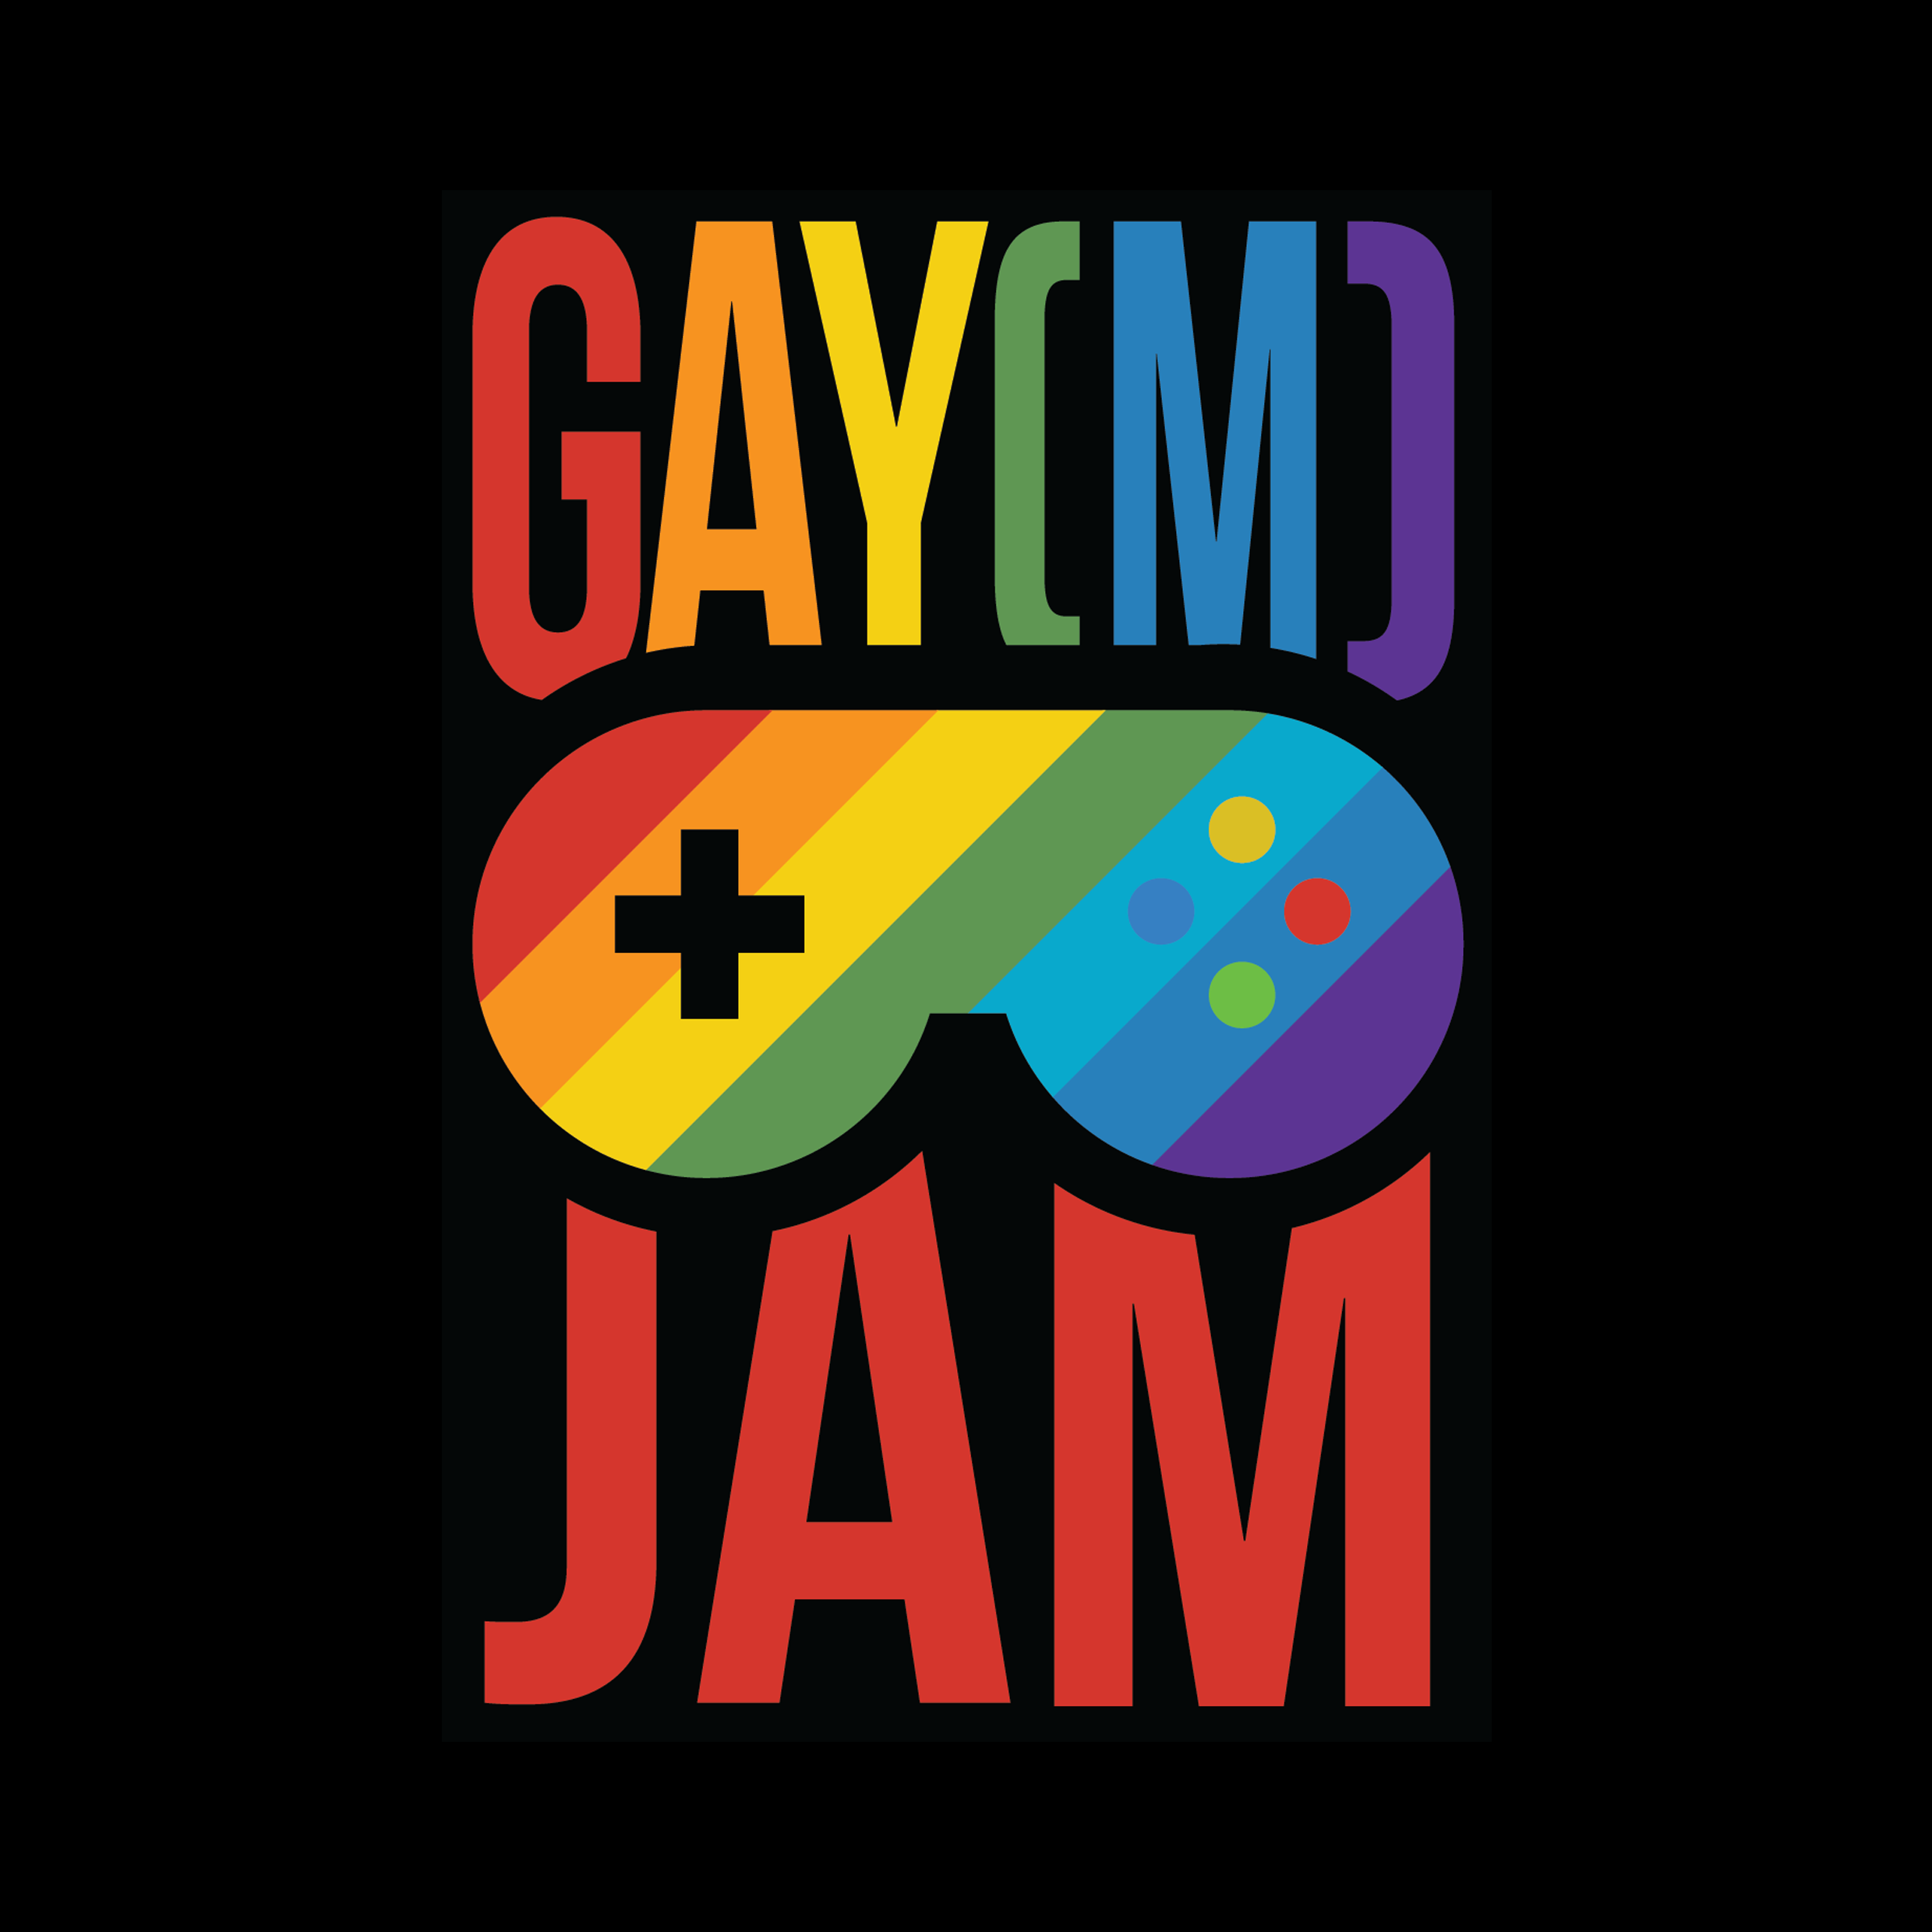 Brighton's first ever Gay(M) Jam - Games Industry Spotlight